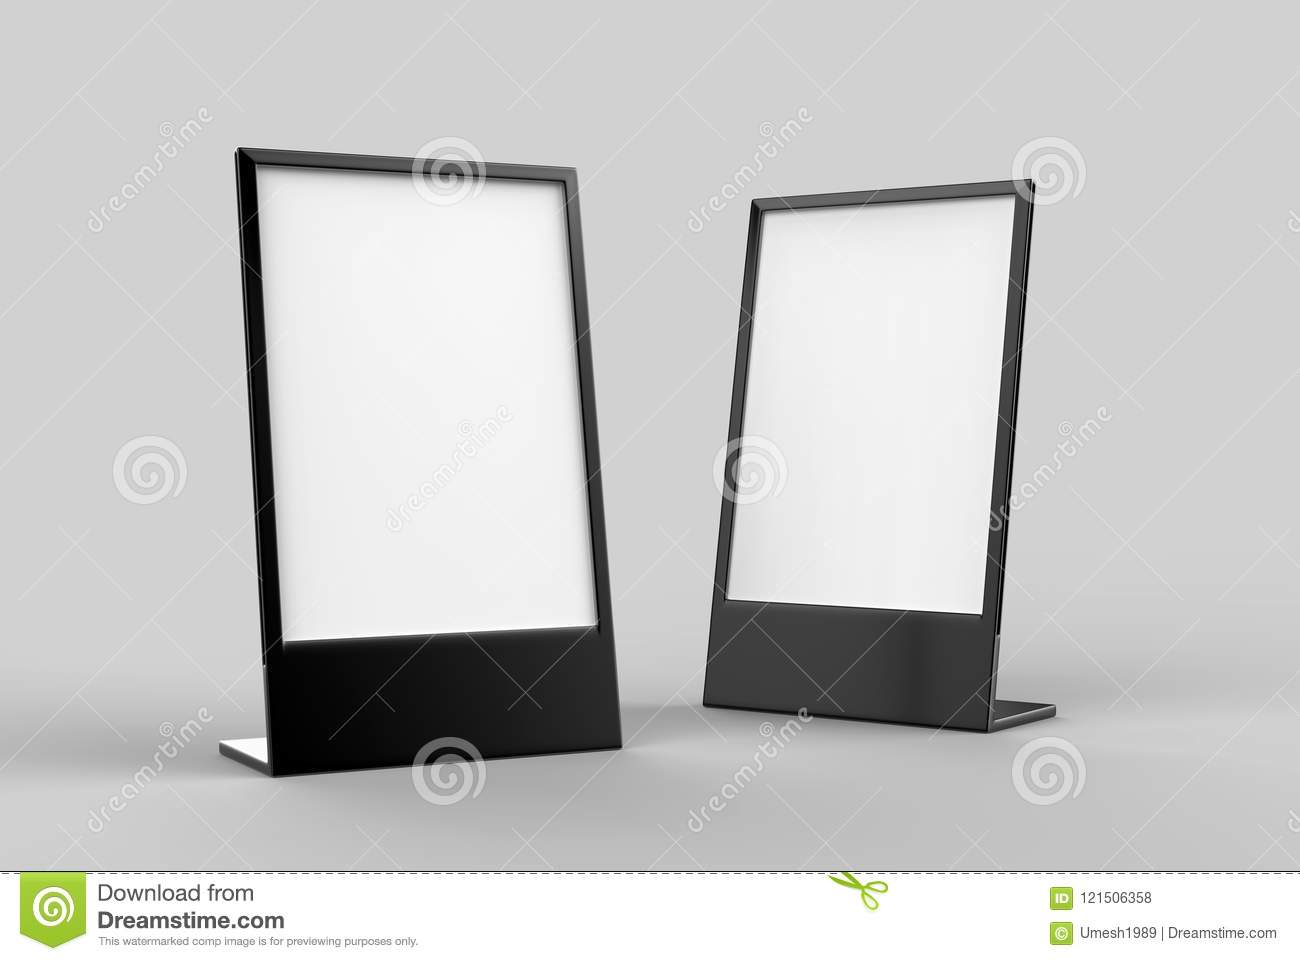 Picture of: Side Loading Slide In Metal Frame Table Top Counter Blank White 3d Render Illustration Stock Illustration Illustration Of Black Market 121506358